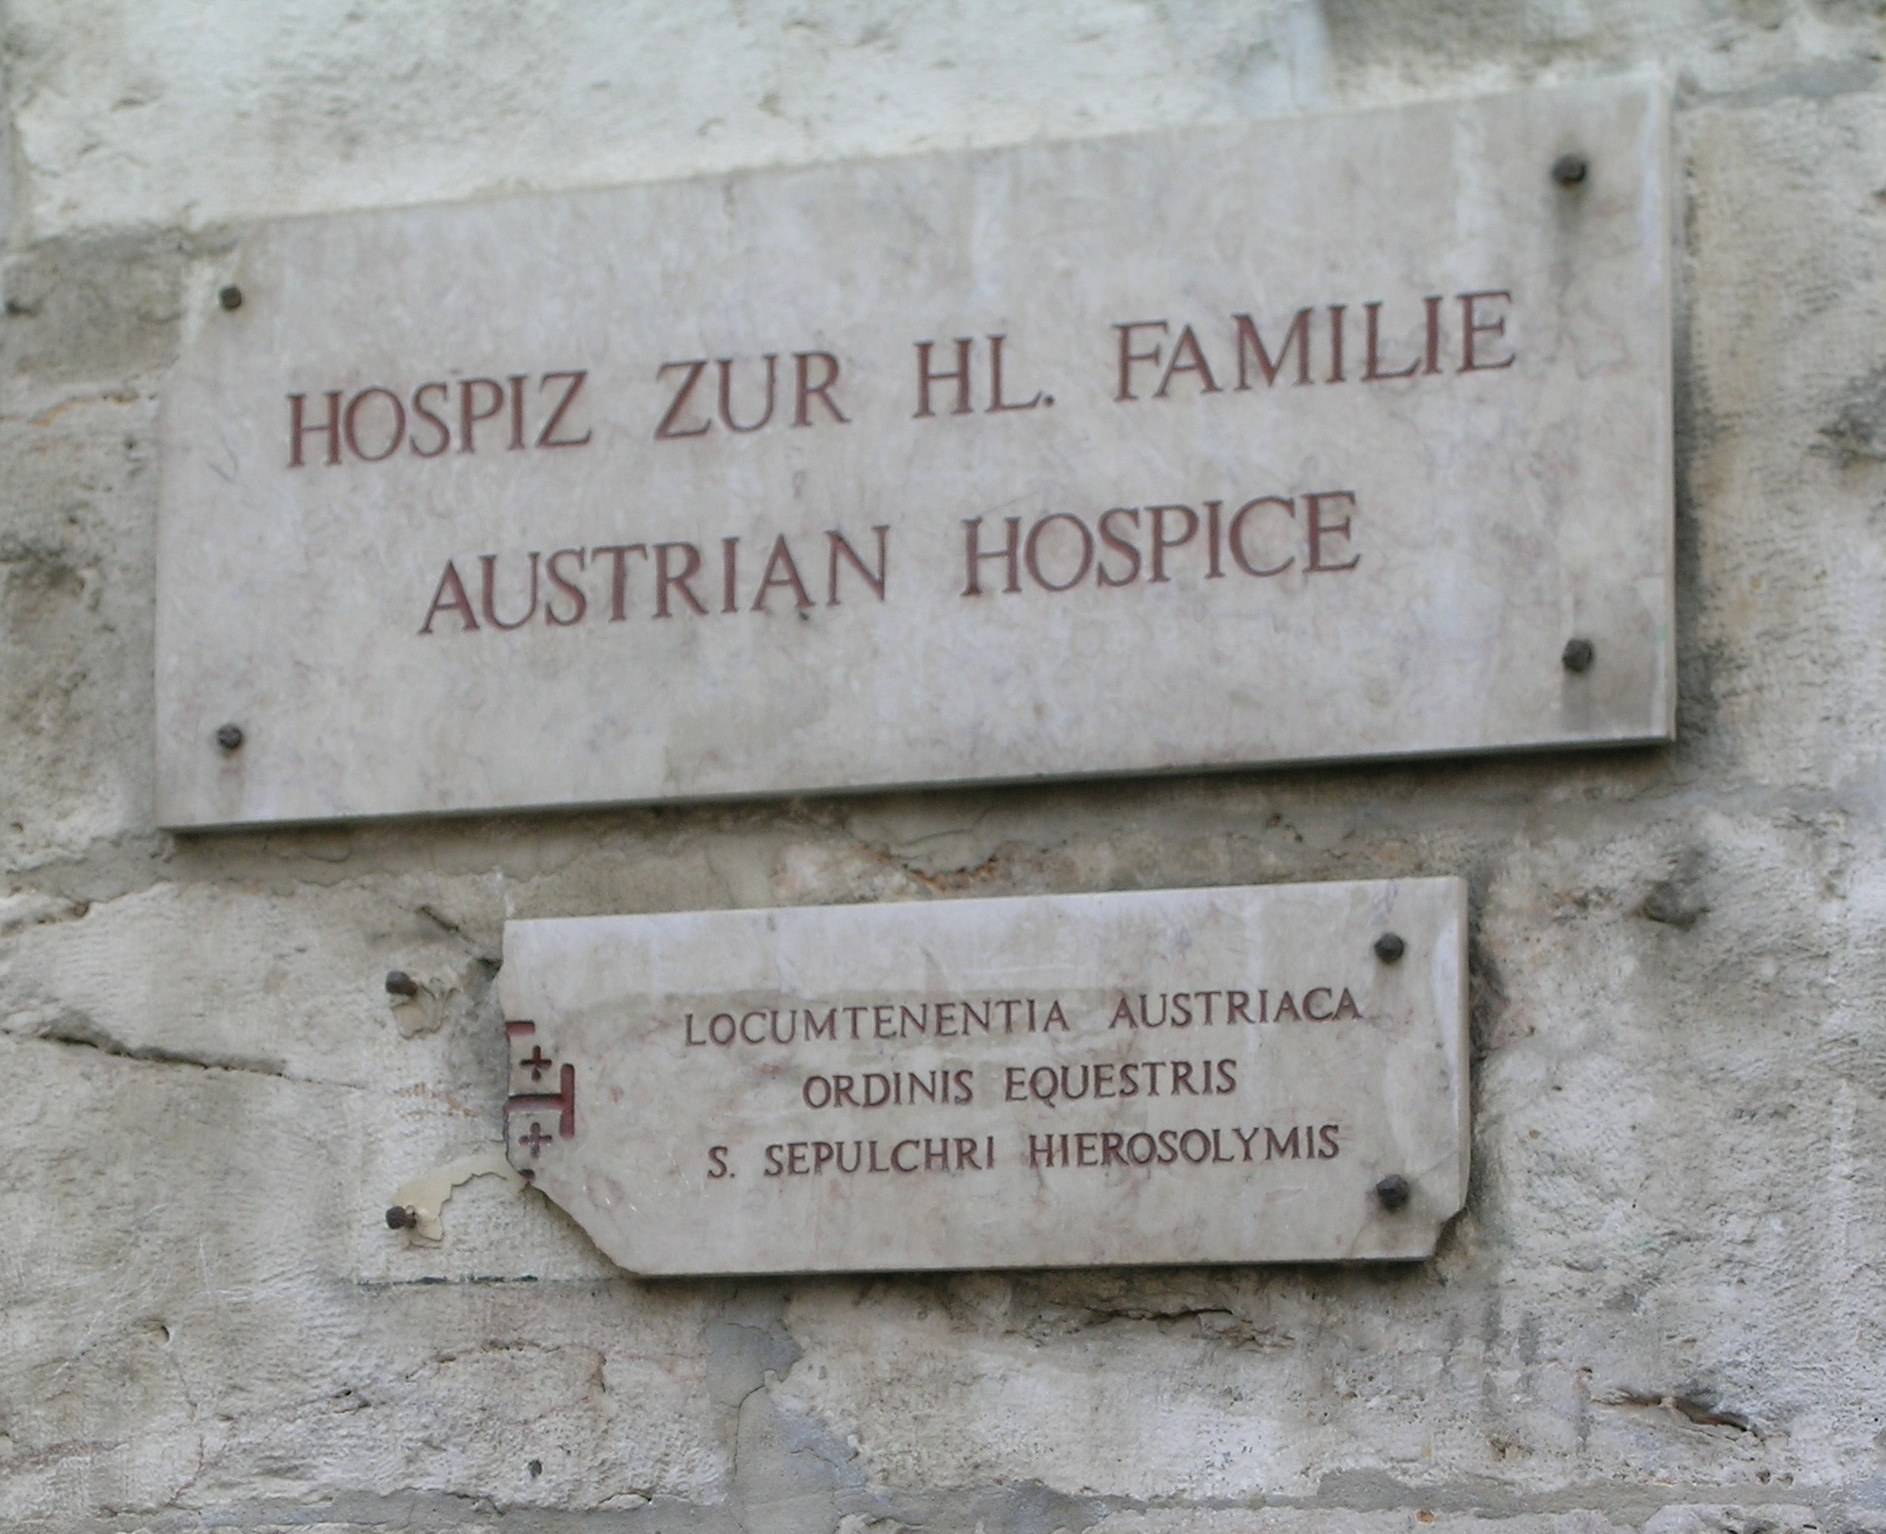 austrian hospice jerusalem old city